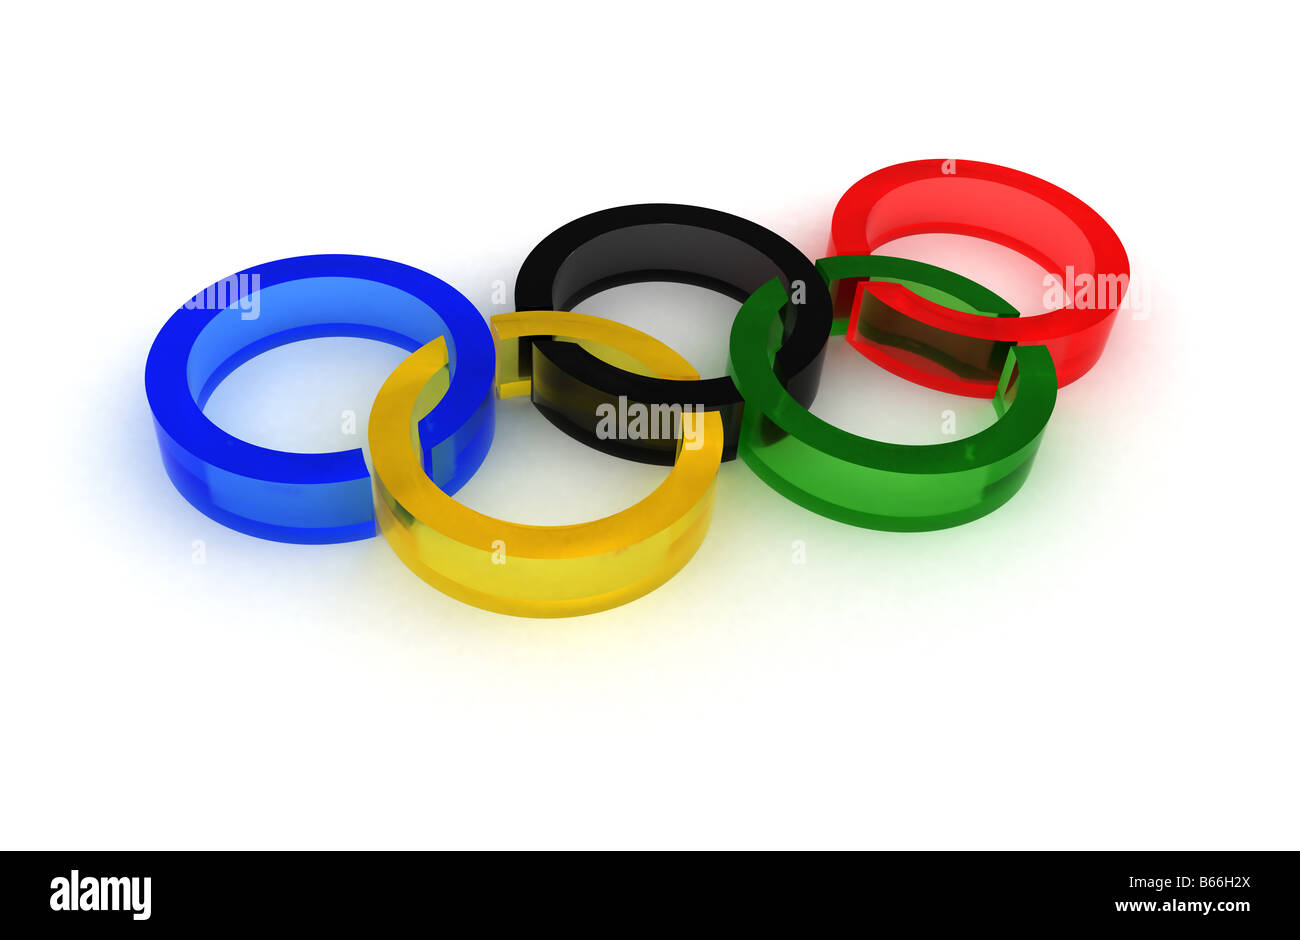 The olympic logo - Stock Image